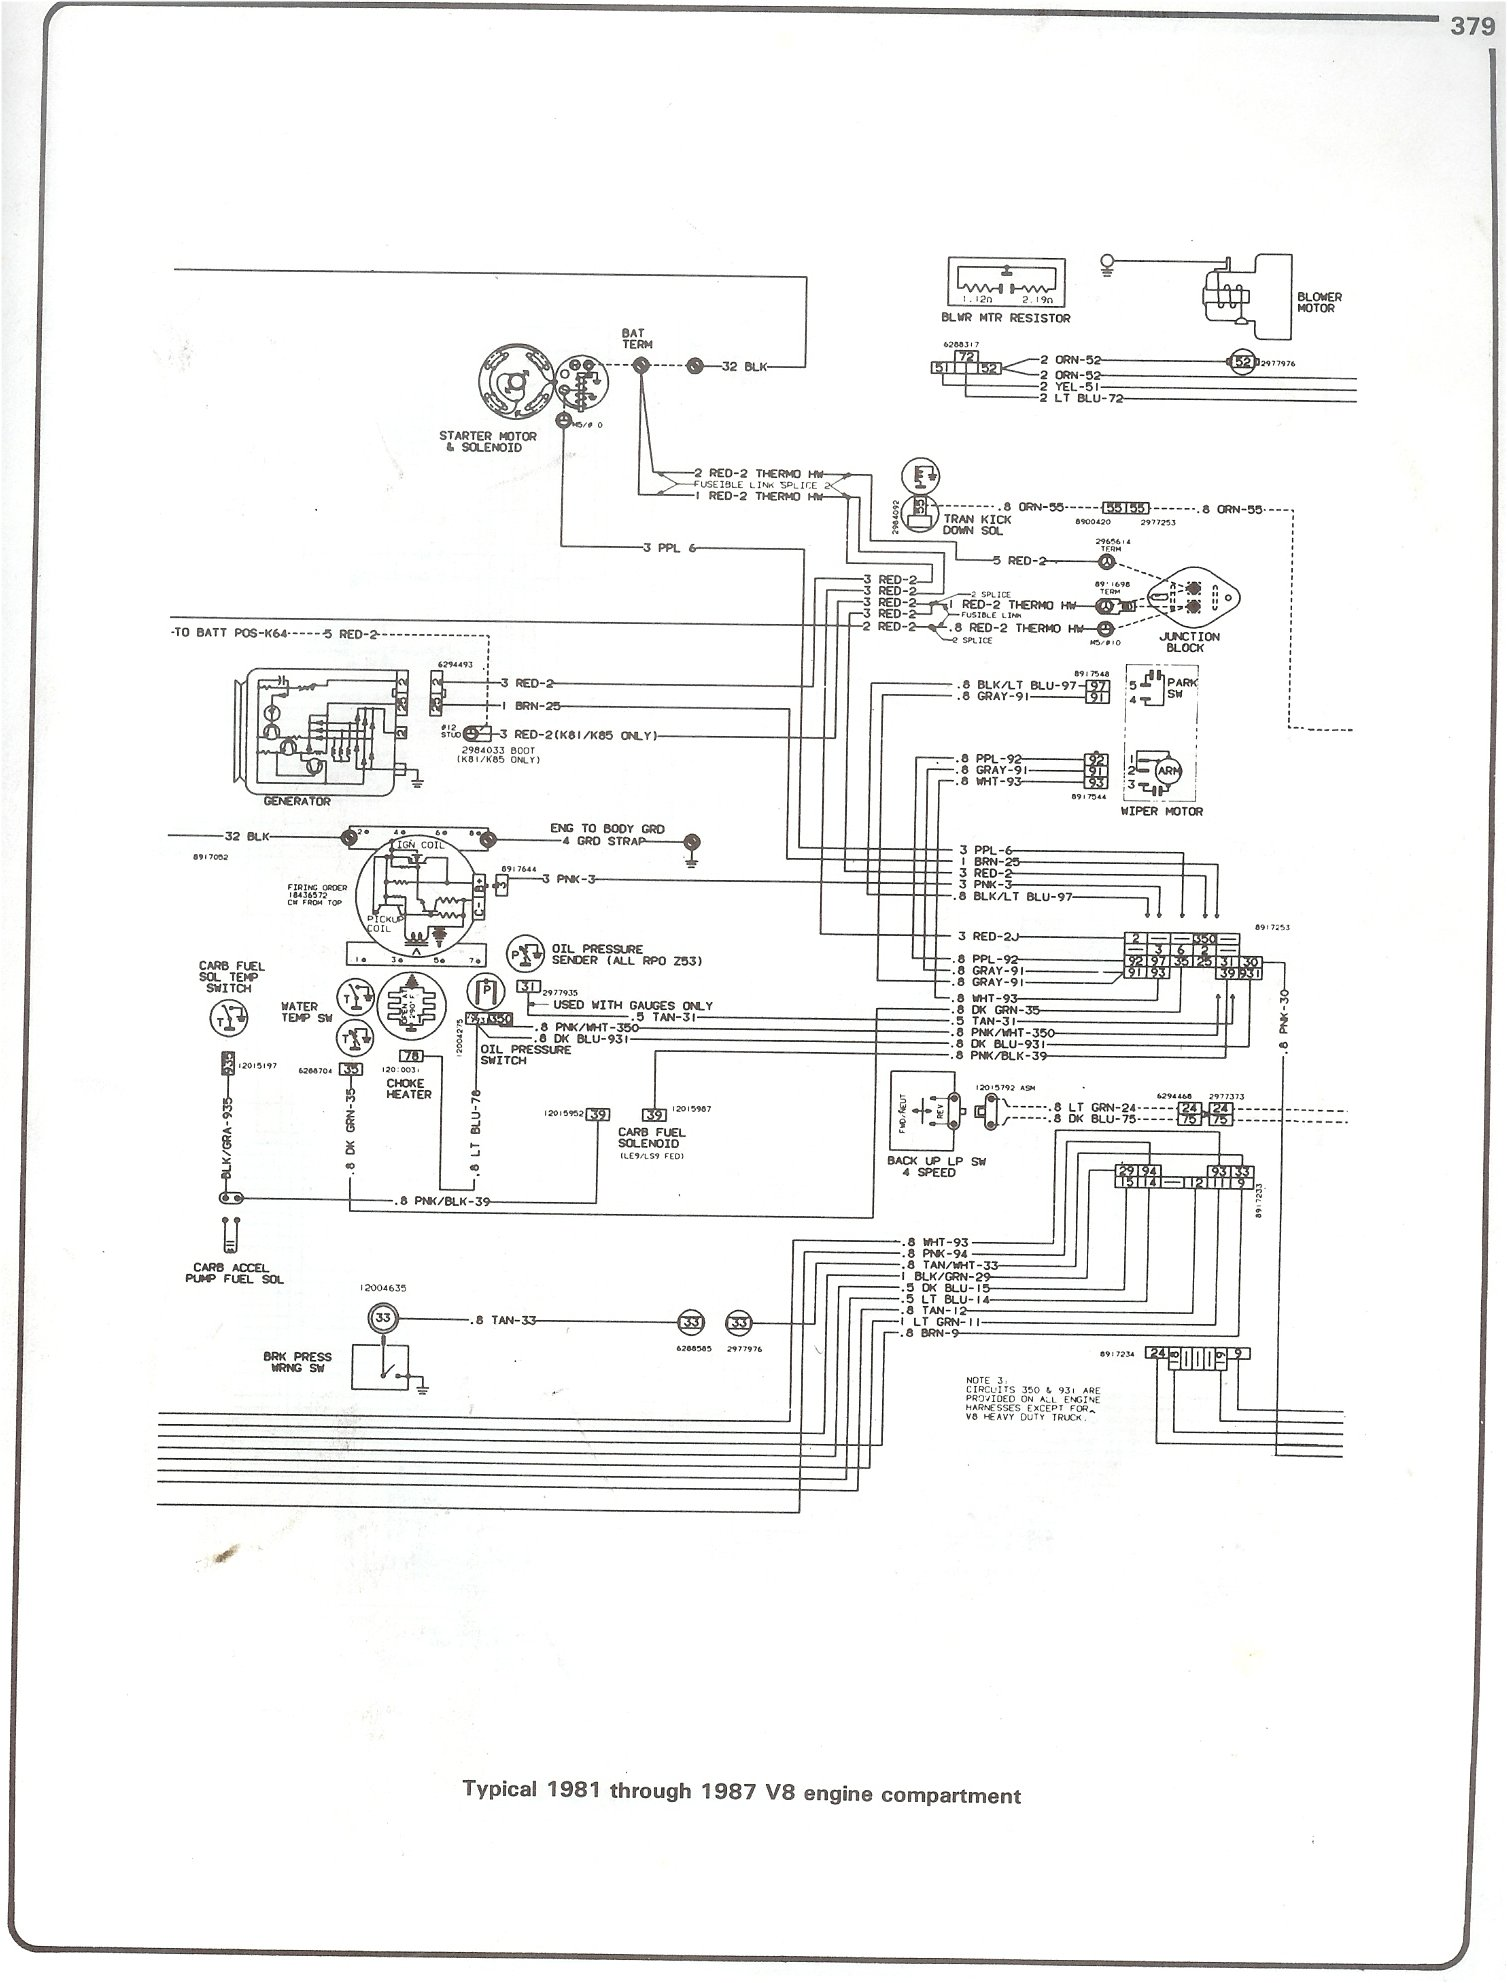 hight resolution of 1984 k10 rear wiring harness wiring diagram explained gmc truck wiring diagrams 87 s10 wiring harness diagram